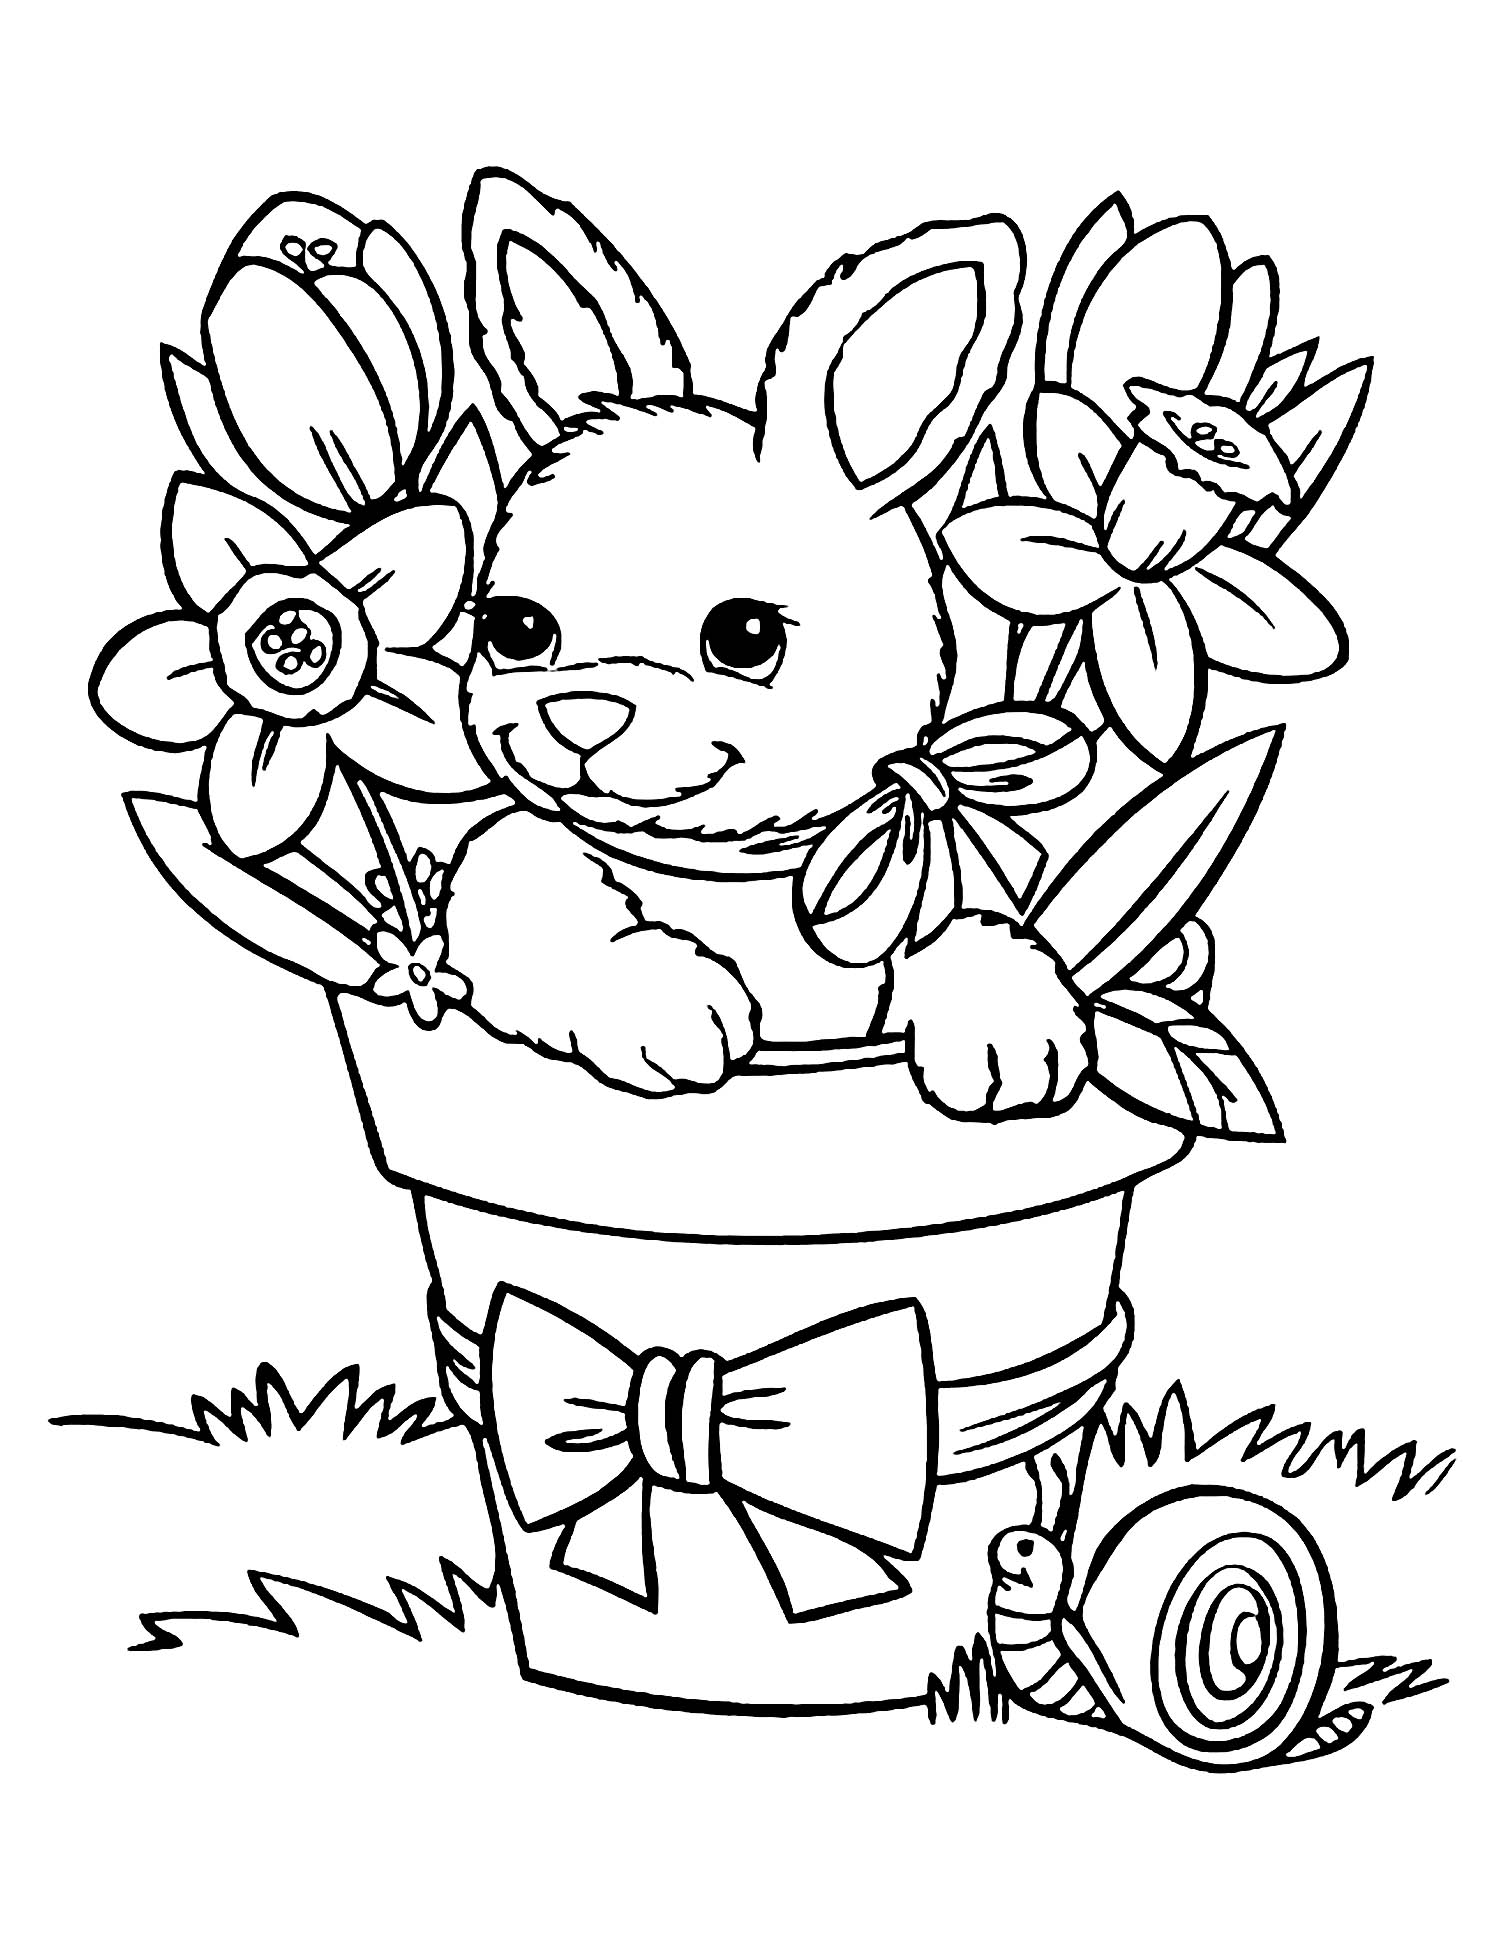 rabbit pictures for kids for colouring rabbit for children rabbit kids coloring pages kids colouring for pictures rabbit for